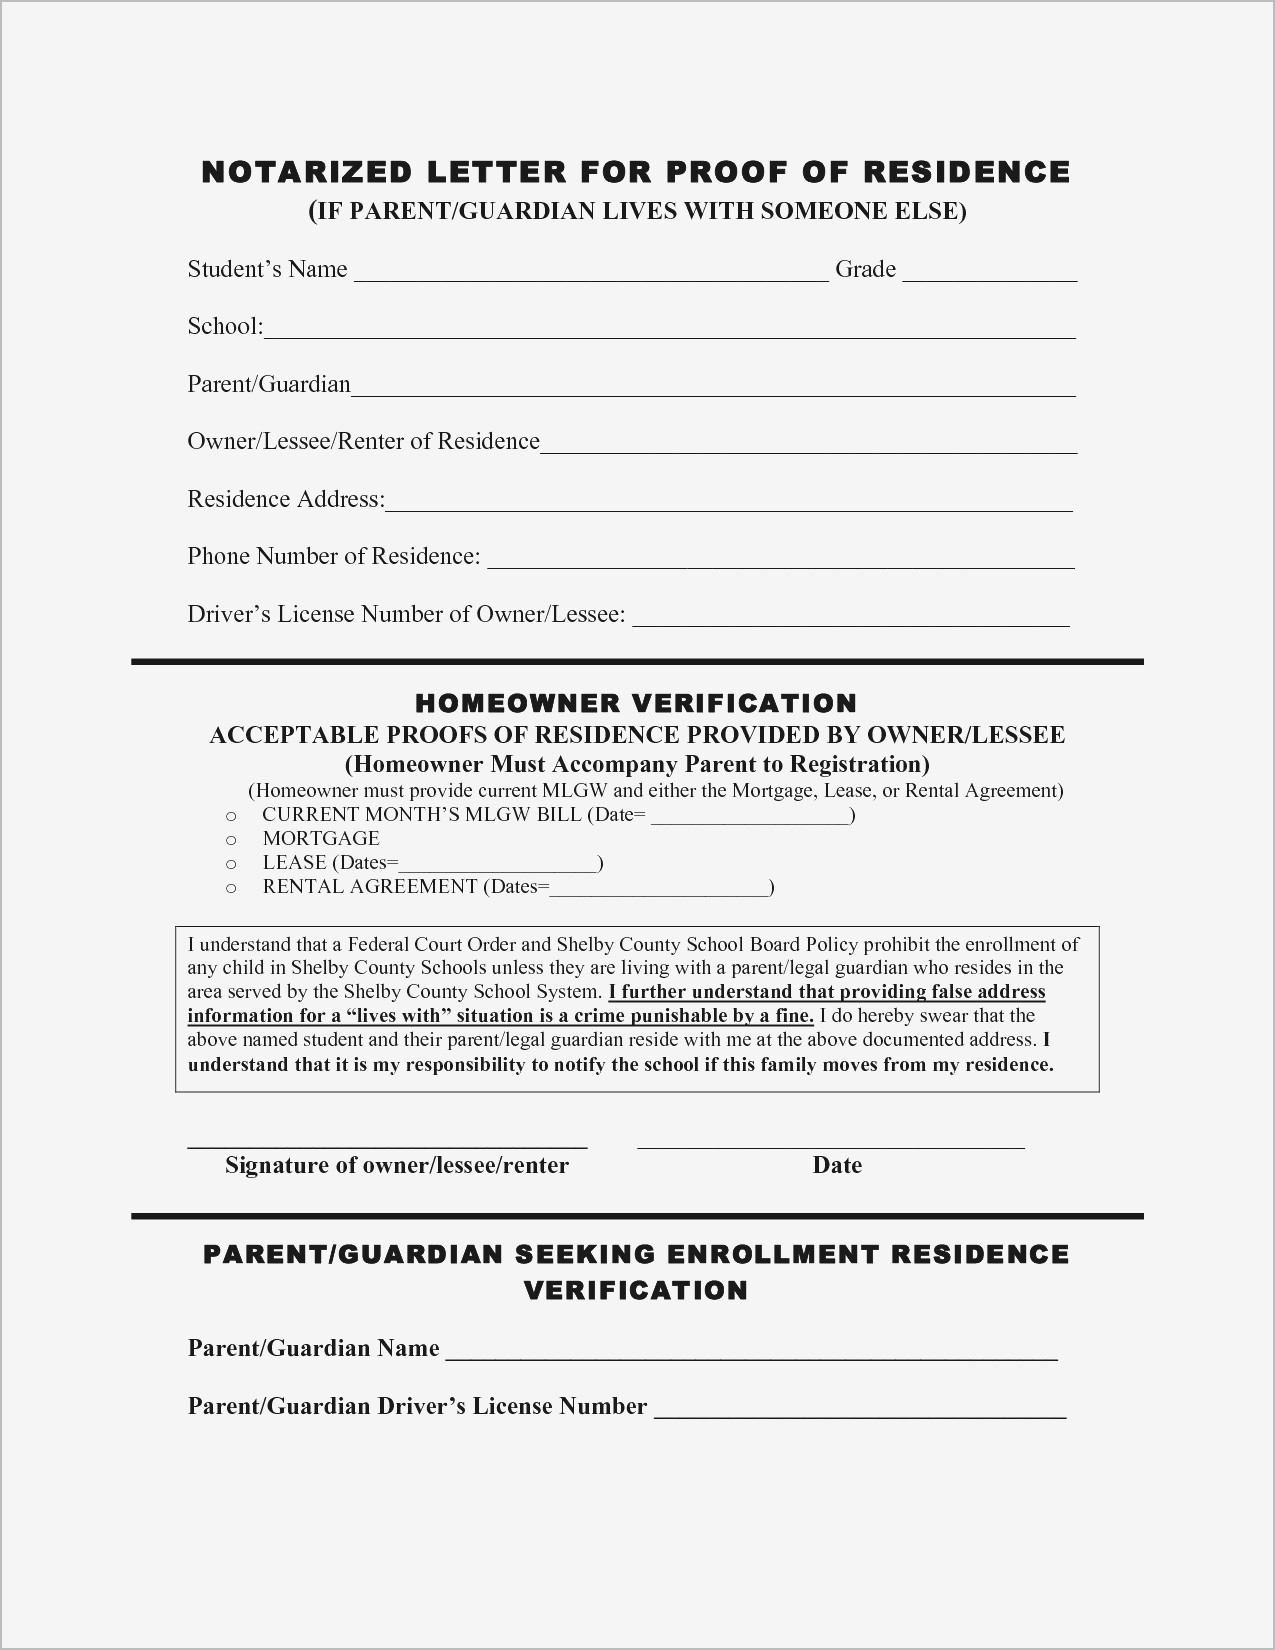 Proof Of Residency Letter Template - Proof Residency Letter Template Word Awesome Printable Notarized